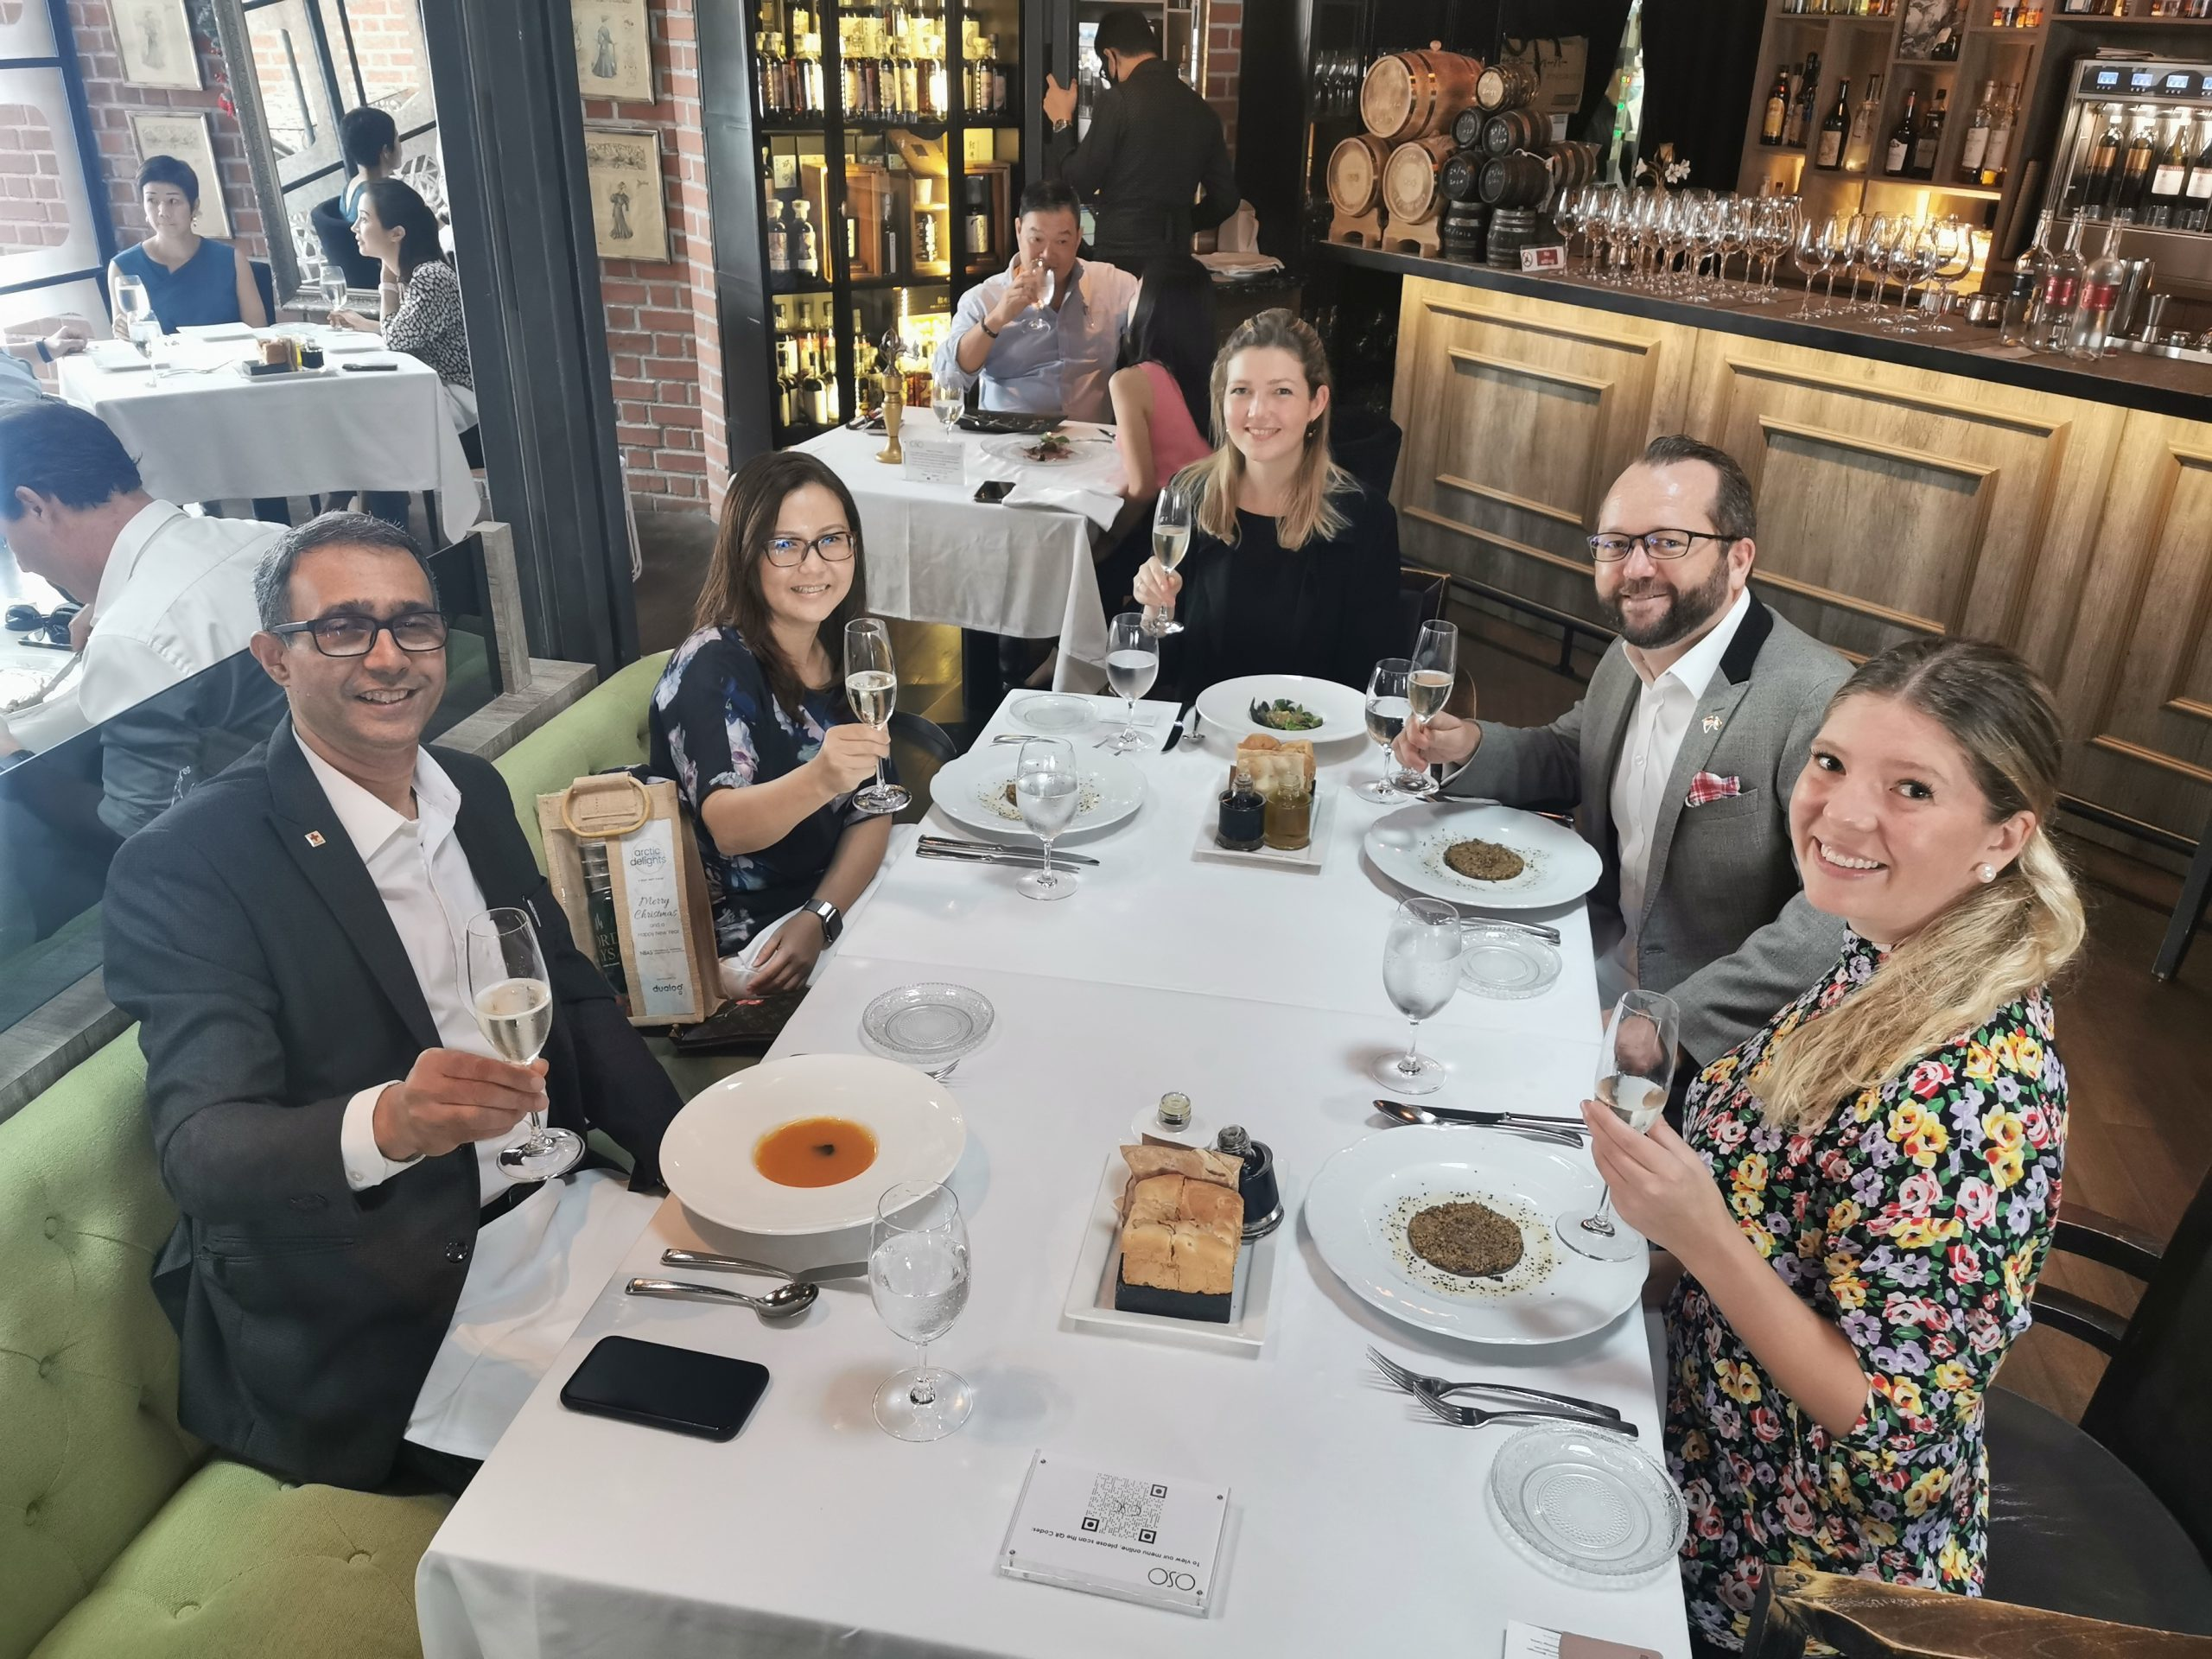 NBAS-members enjoying a business lunch